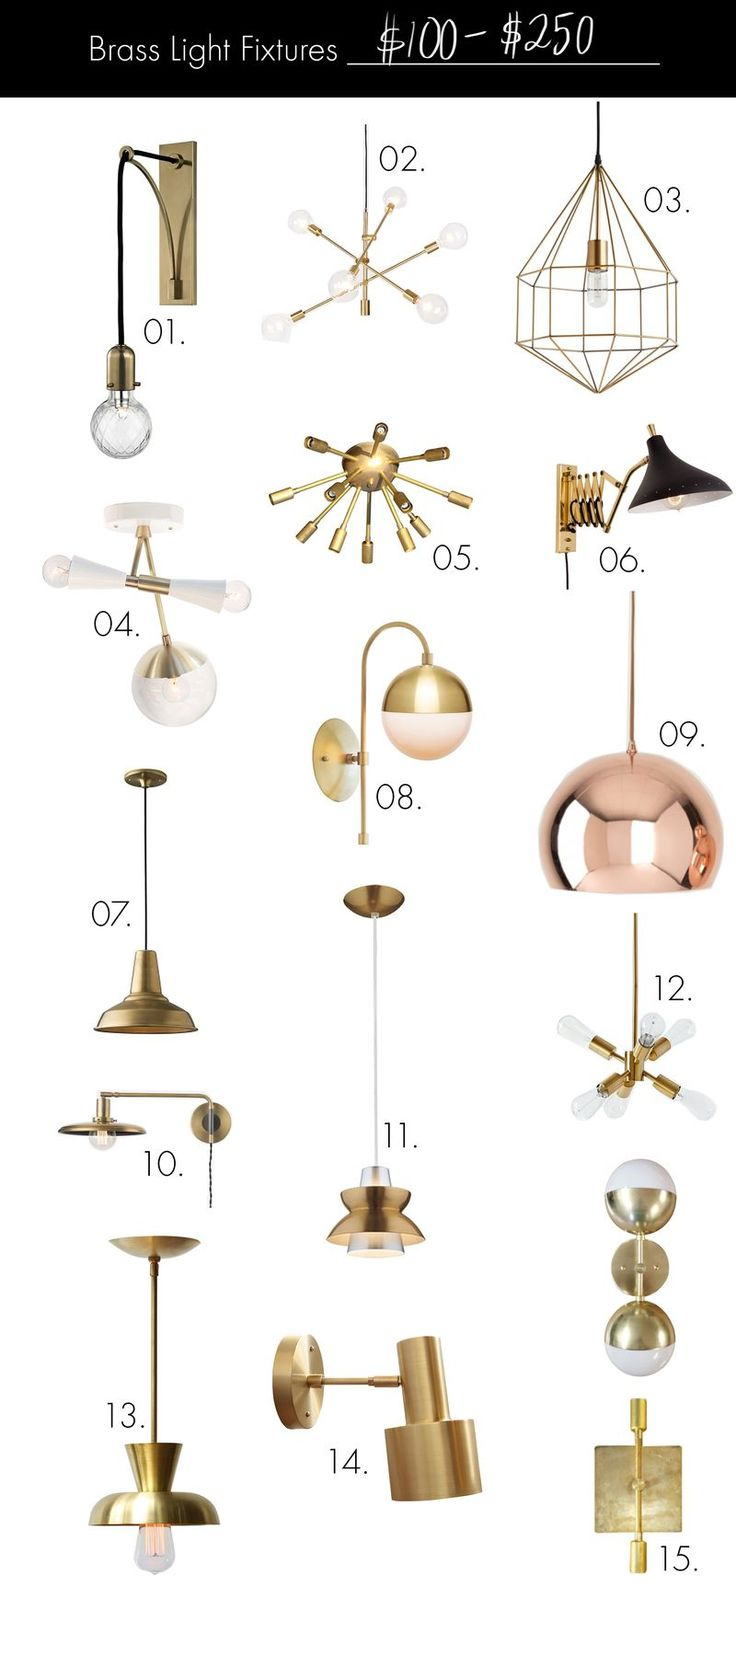 Brass Light Fixtures On Any Budget 100 250